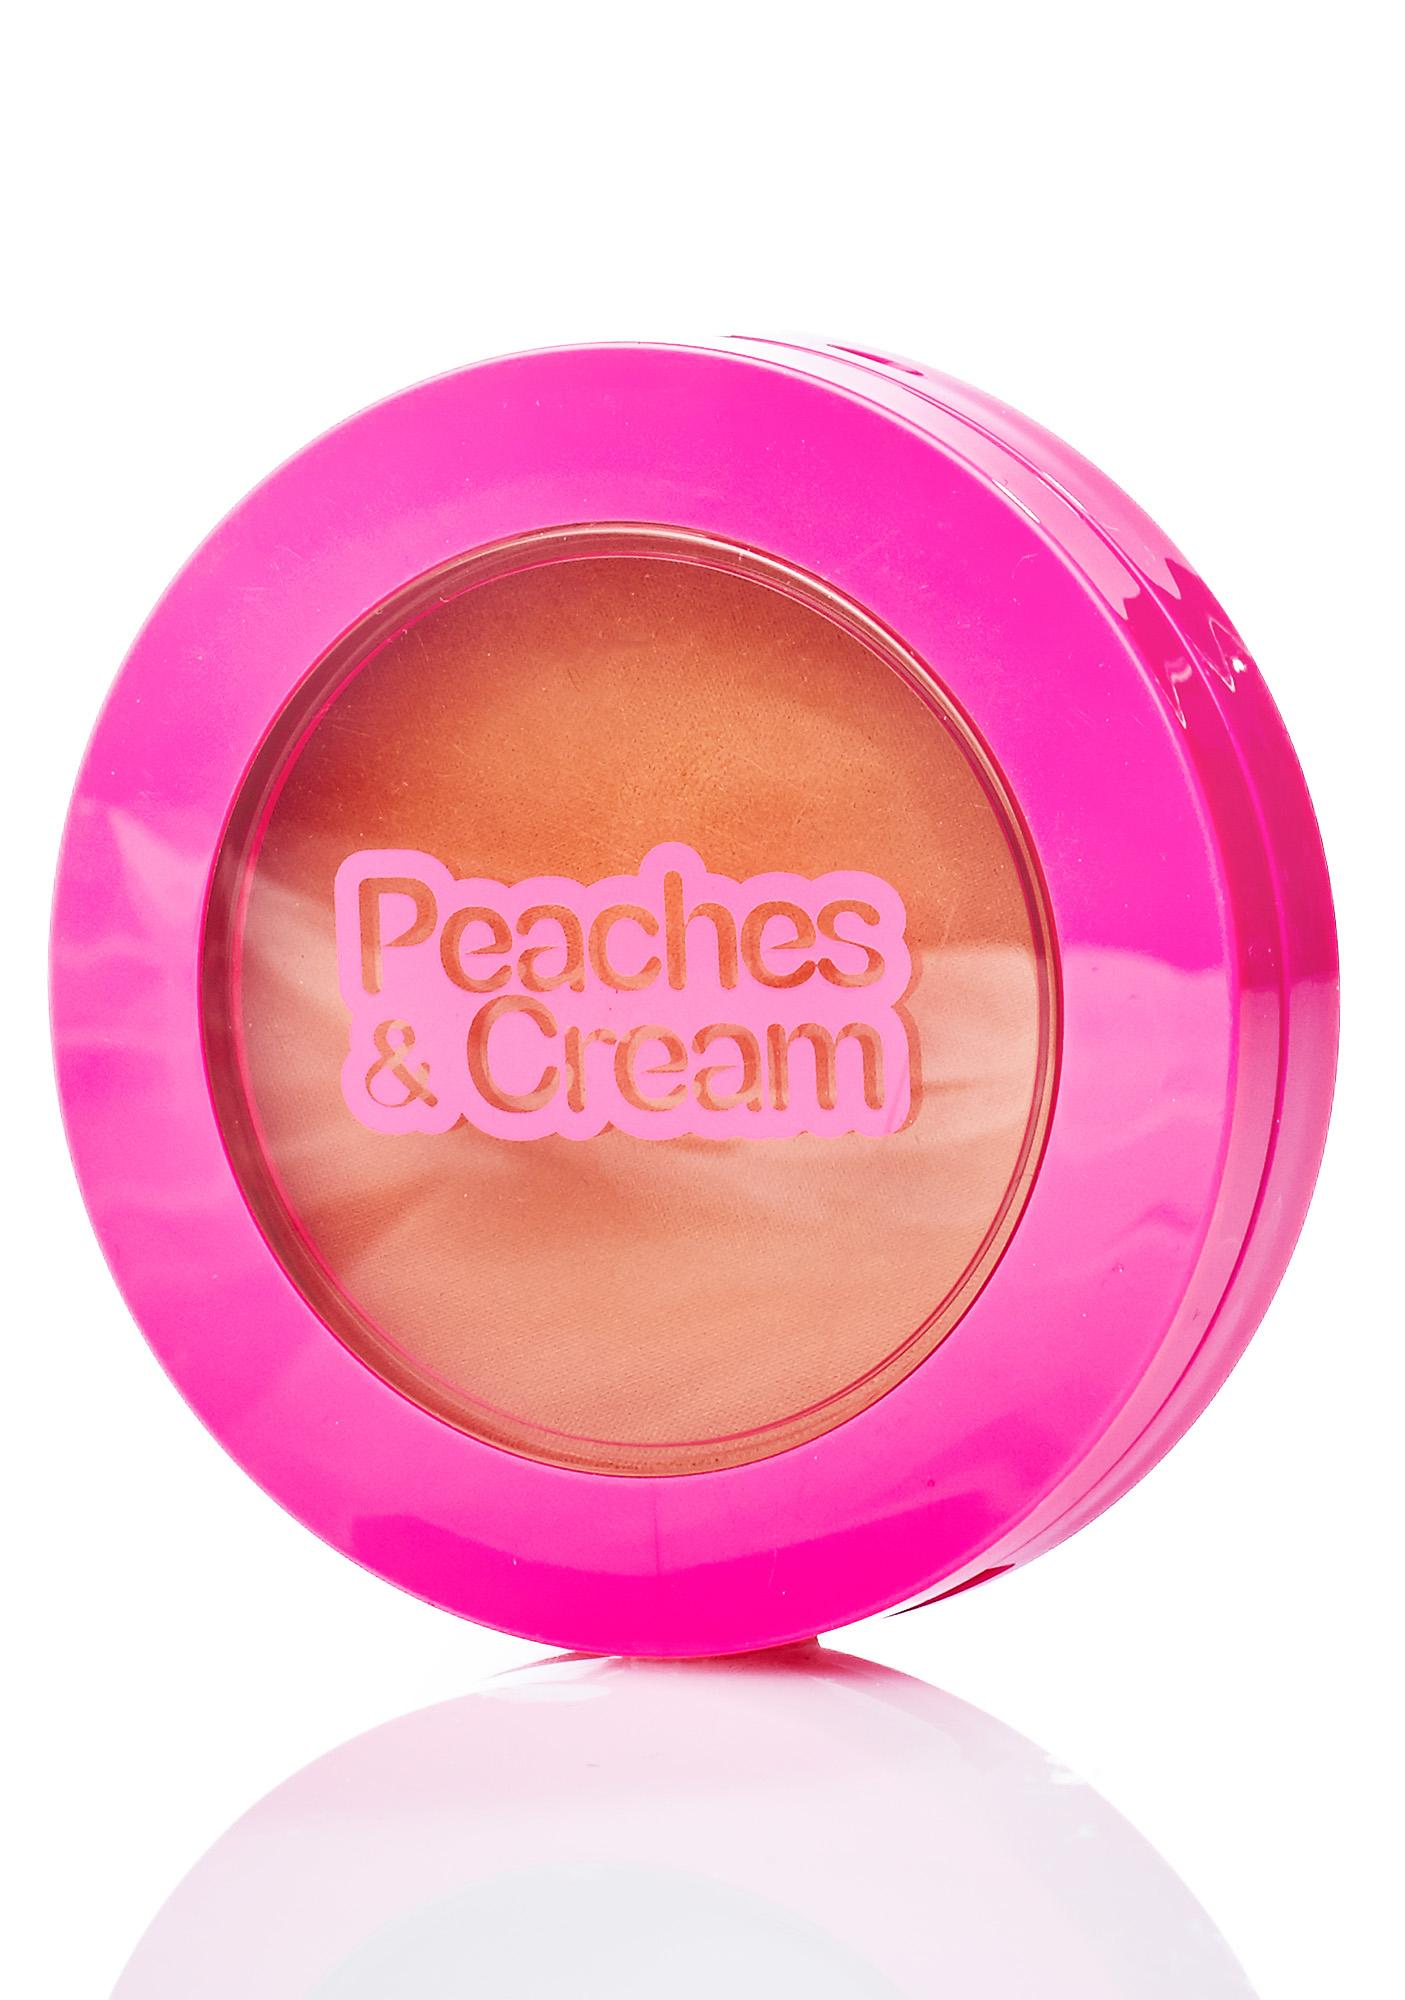 Peaches & Cream Matte Bronzing Powder